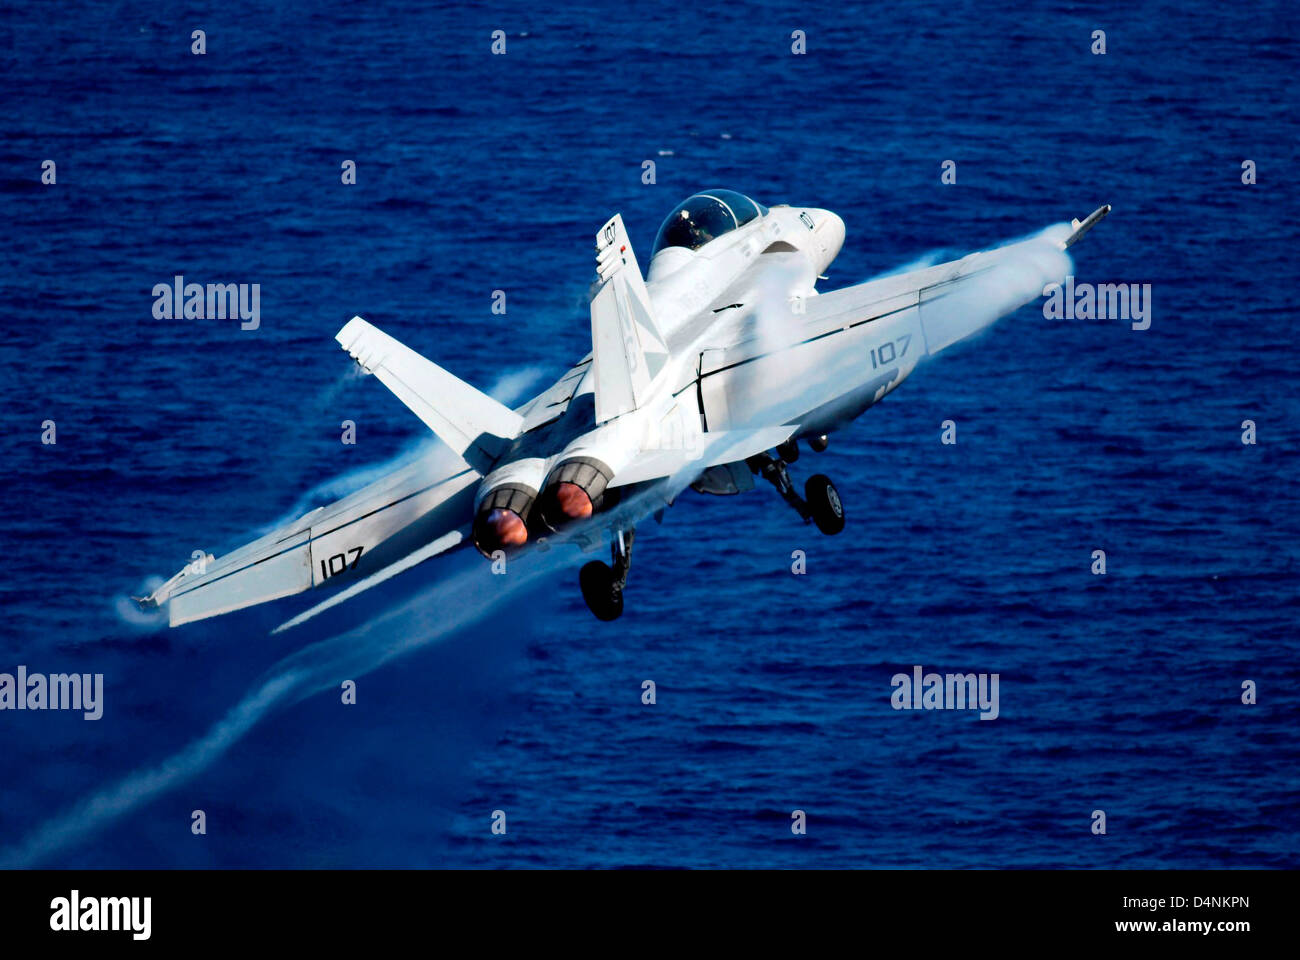 A US Navy F/A-18C Hornet fighter aircraft launches from the Nimitz-class aircraft carrier USS John C. Stennis February - Stock Image